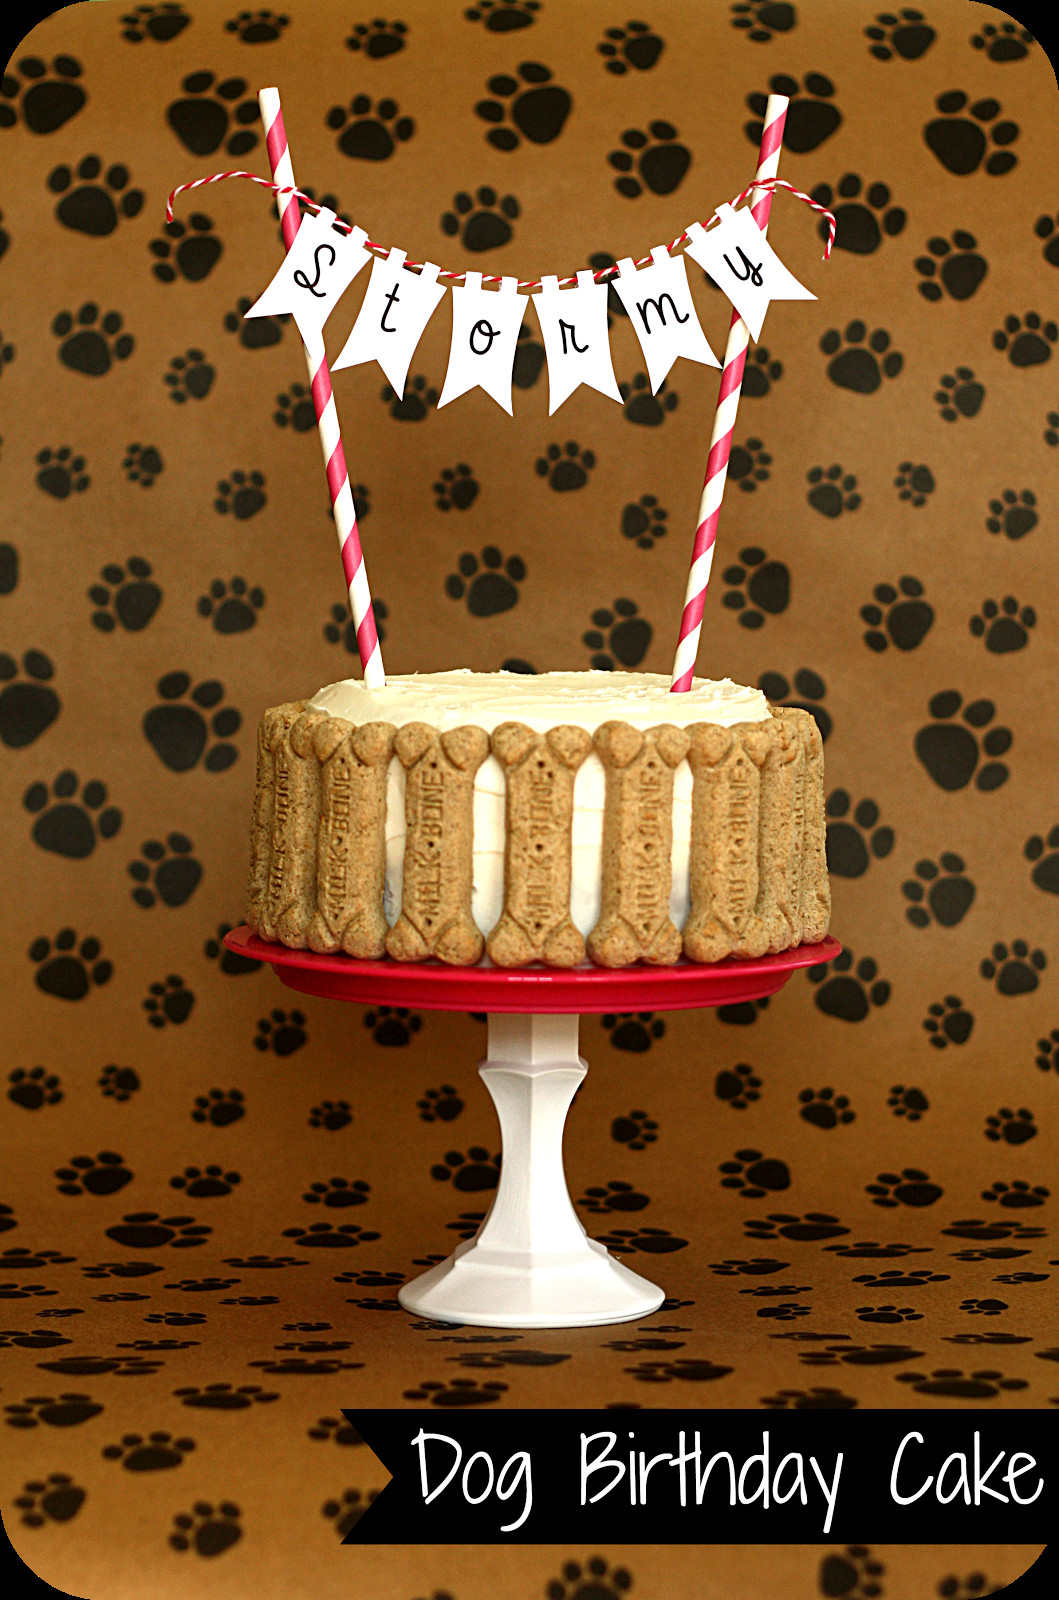 Best ideas about Dog Birthday Cake . Save or Pin Keeping My Cents ¢¢¢ Dog Birthday Now.